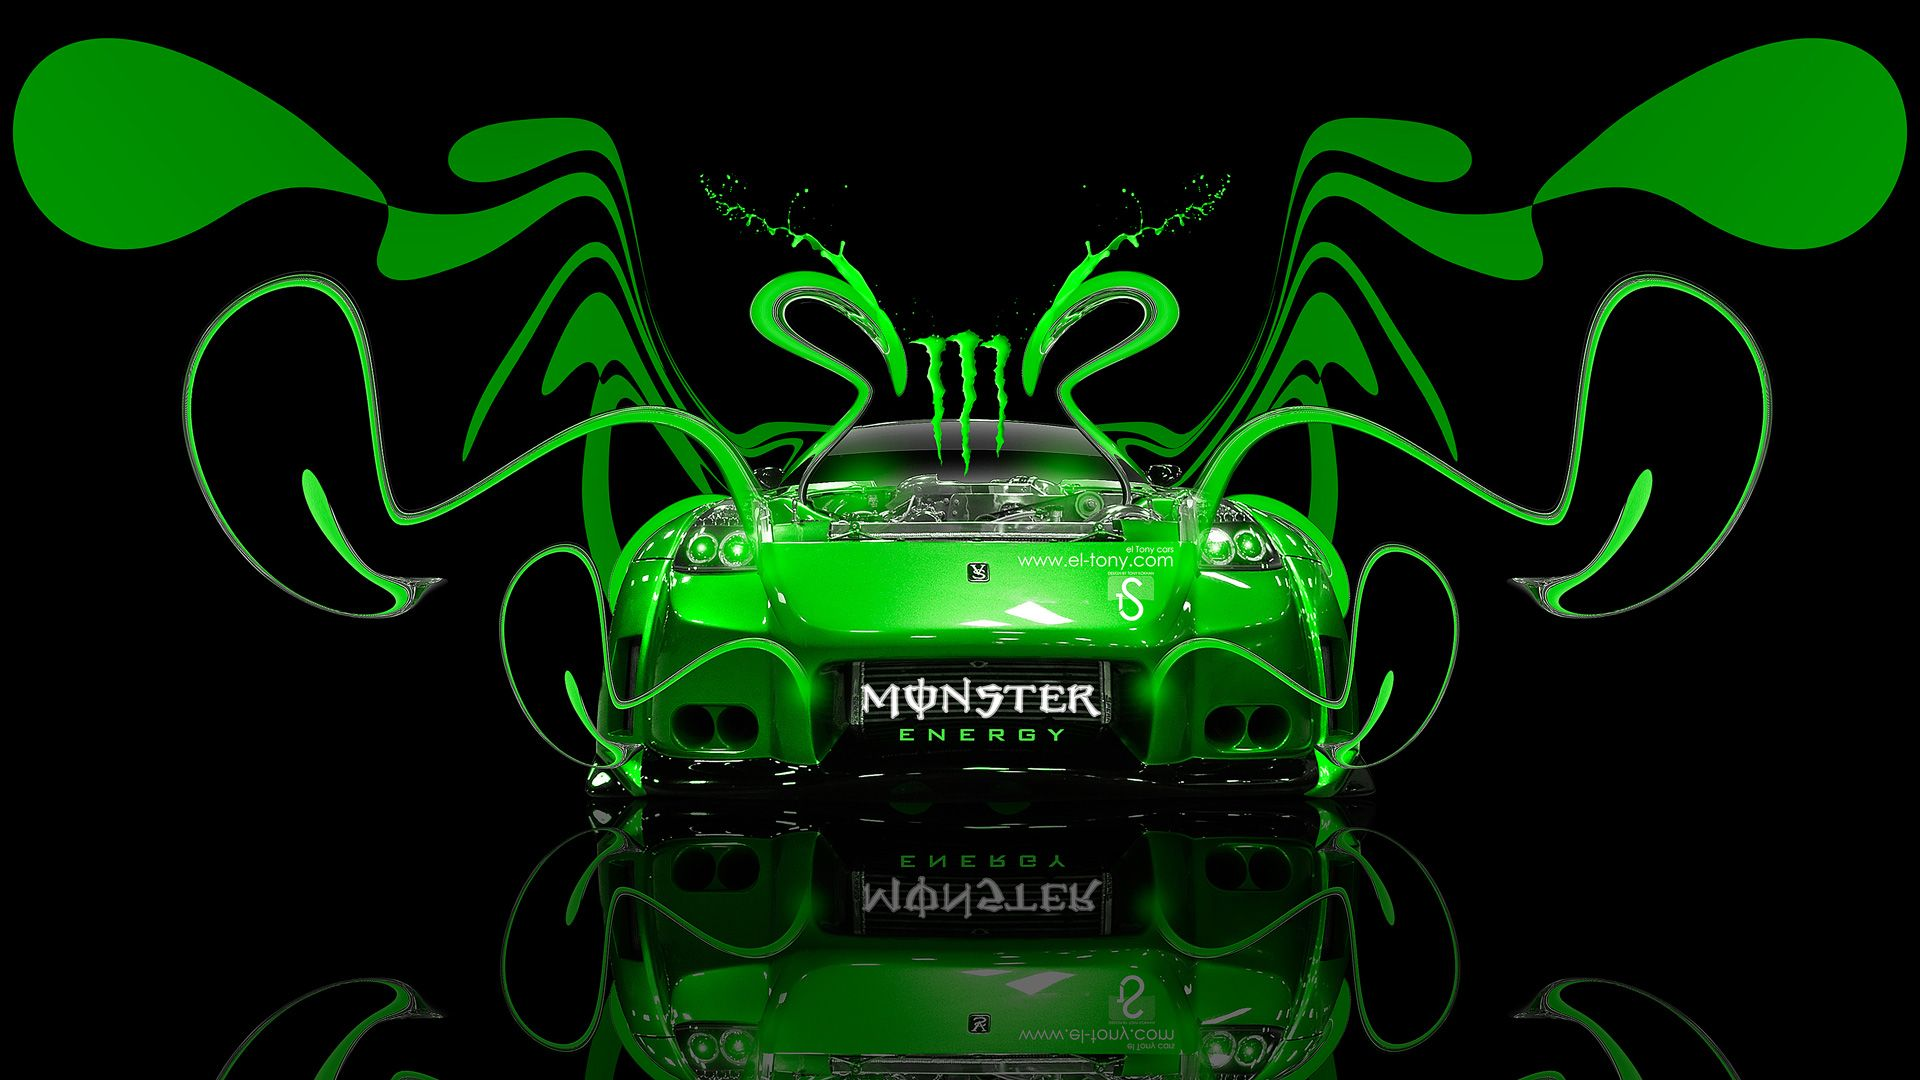 Monster Energy Car Hd Picture 74 High Definition Painting Image